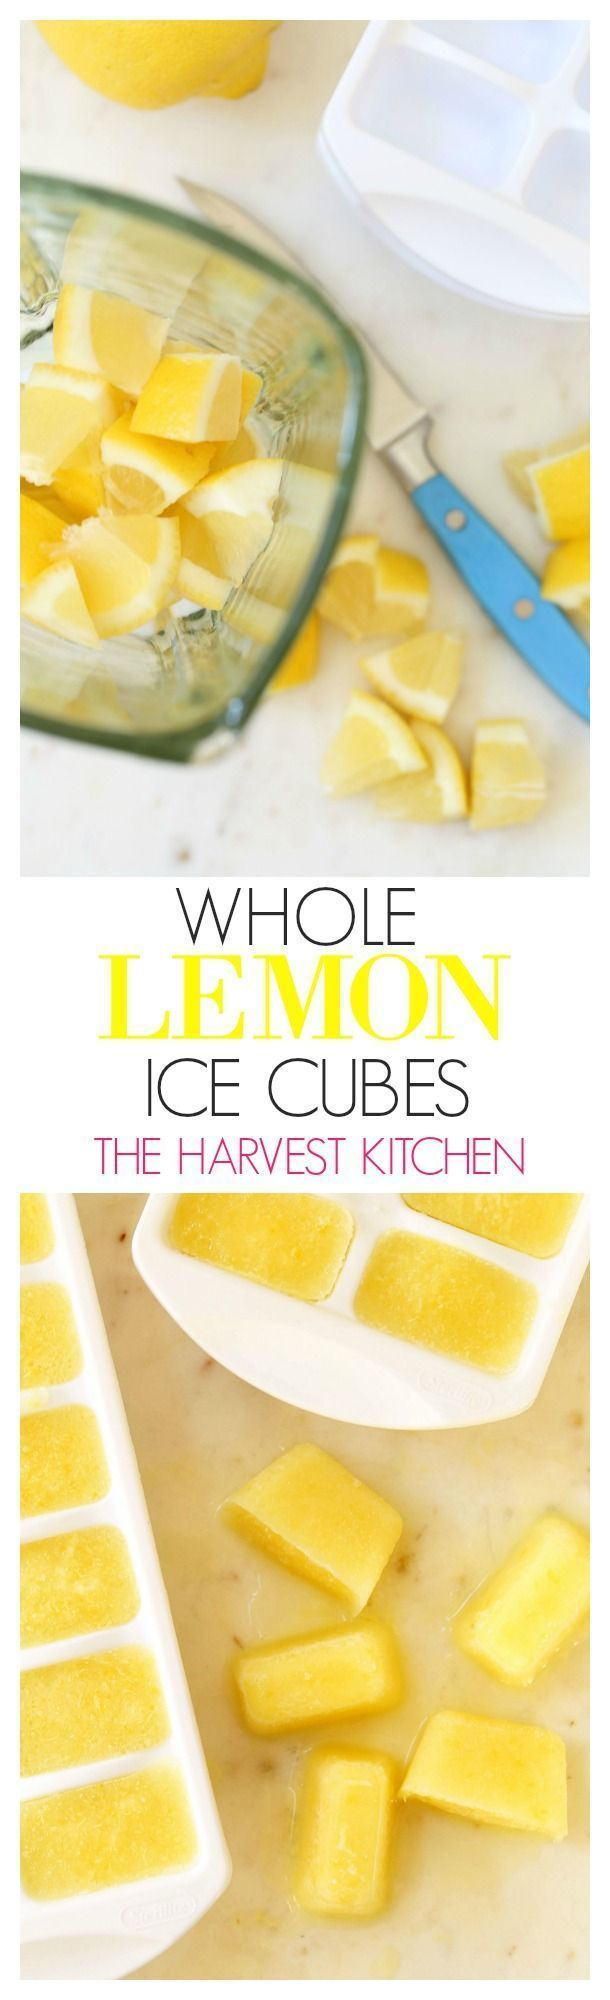 These Immune Boosting Whole Lemon Ice Cubes pack a big nutritional punch, and they add great flavor when added to a tall glass of water, juice blends, smoothies, soups and sauces.